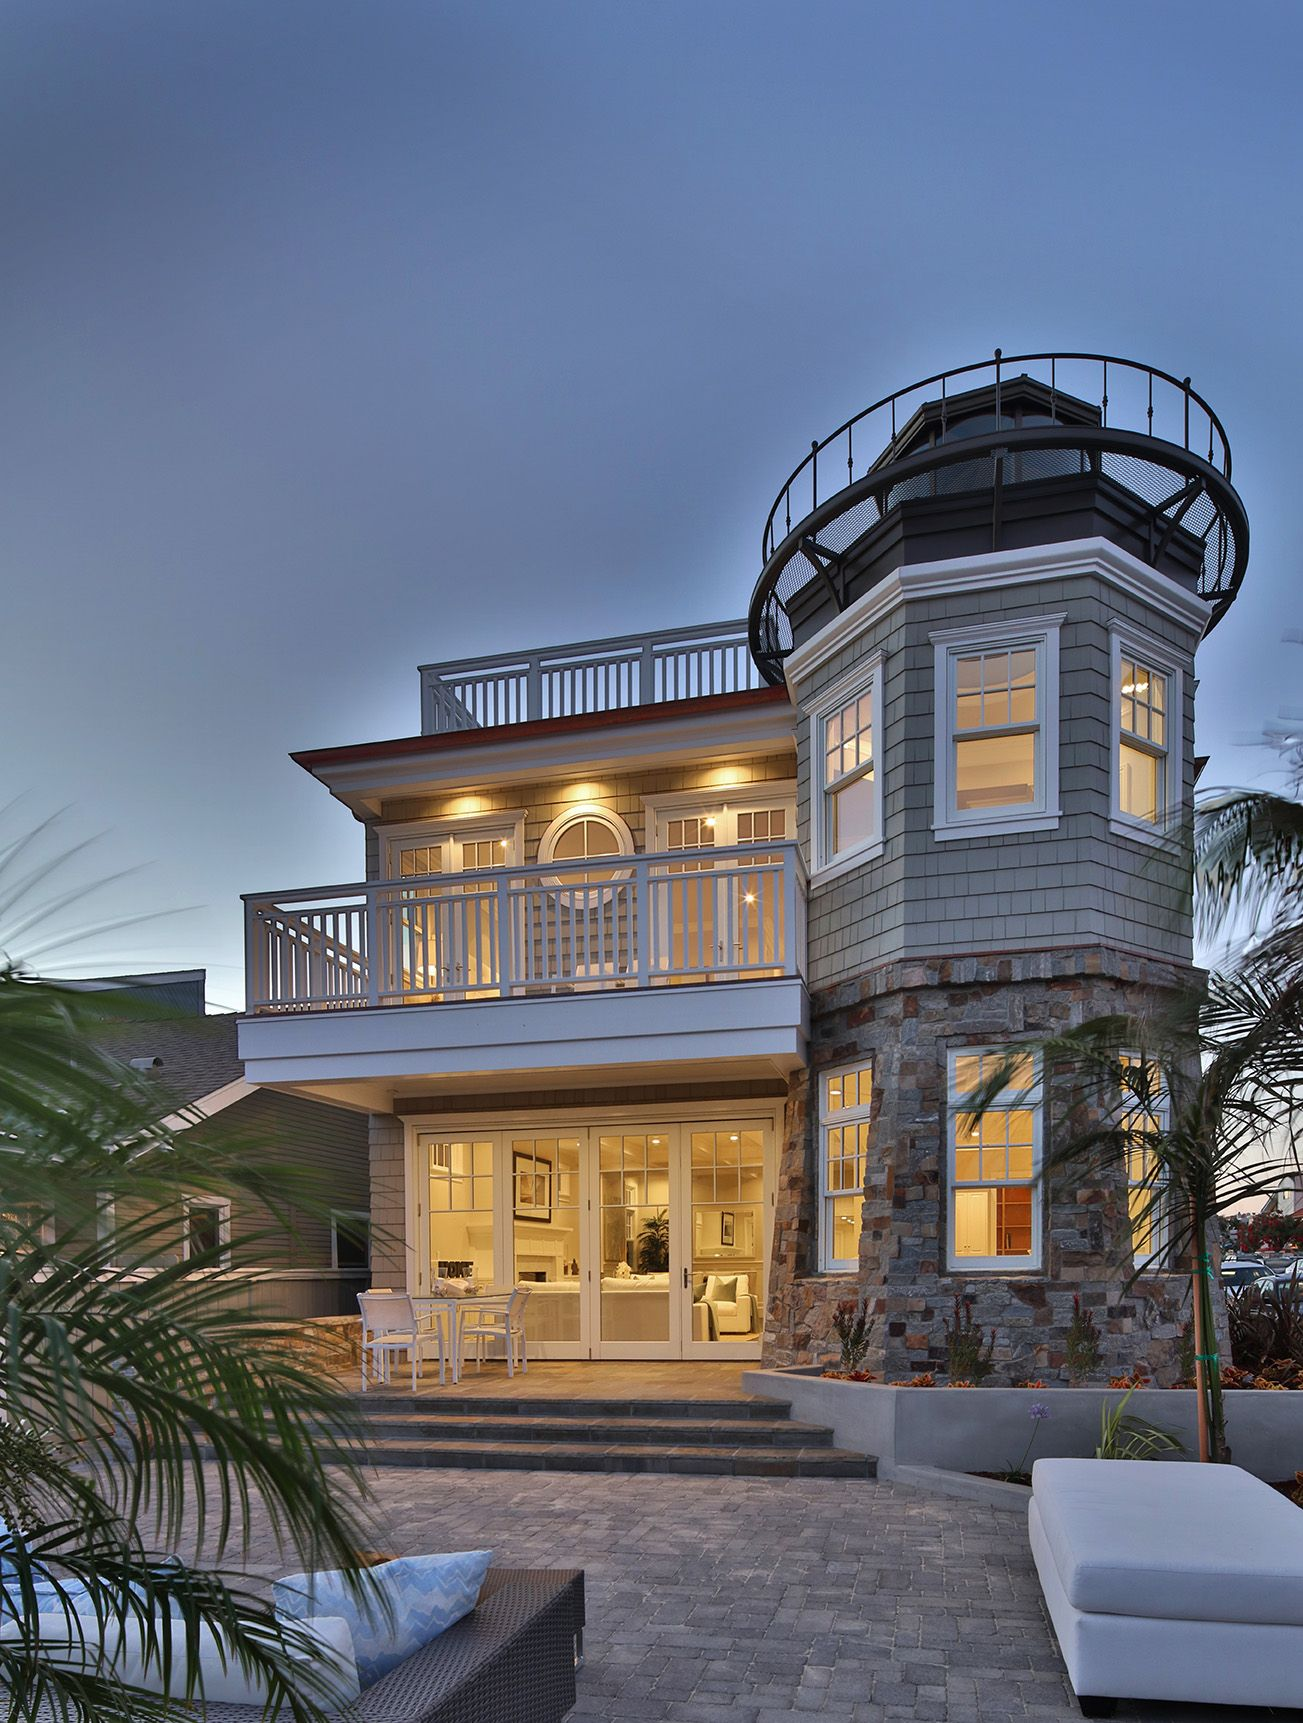 Beachfront Luxury Modern Home Exterior At Night: Coastal Modern Luxury Home Exterior With Lighthouse Feature